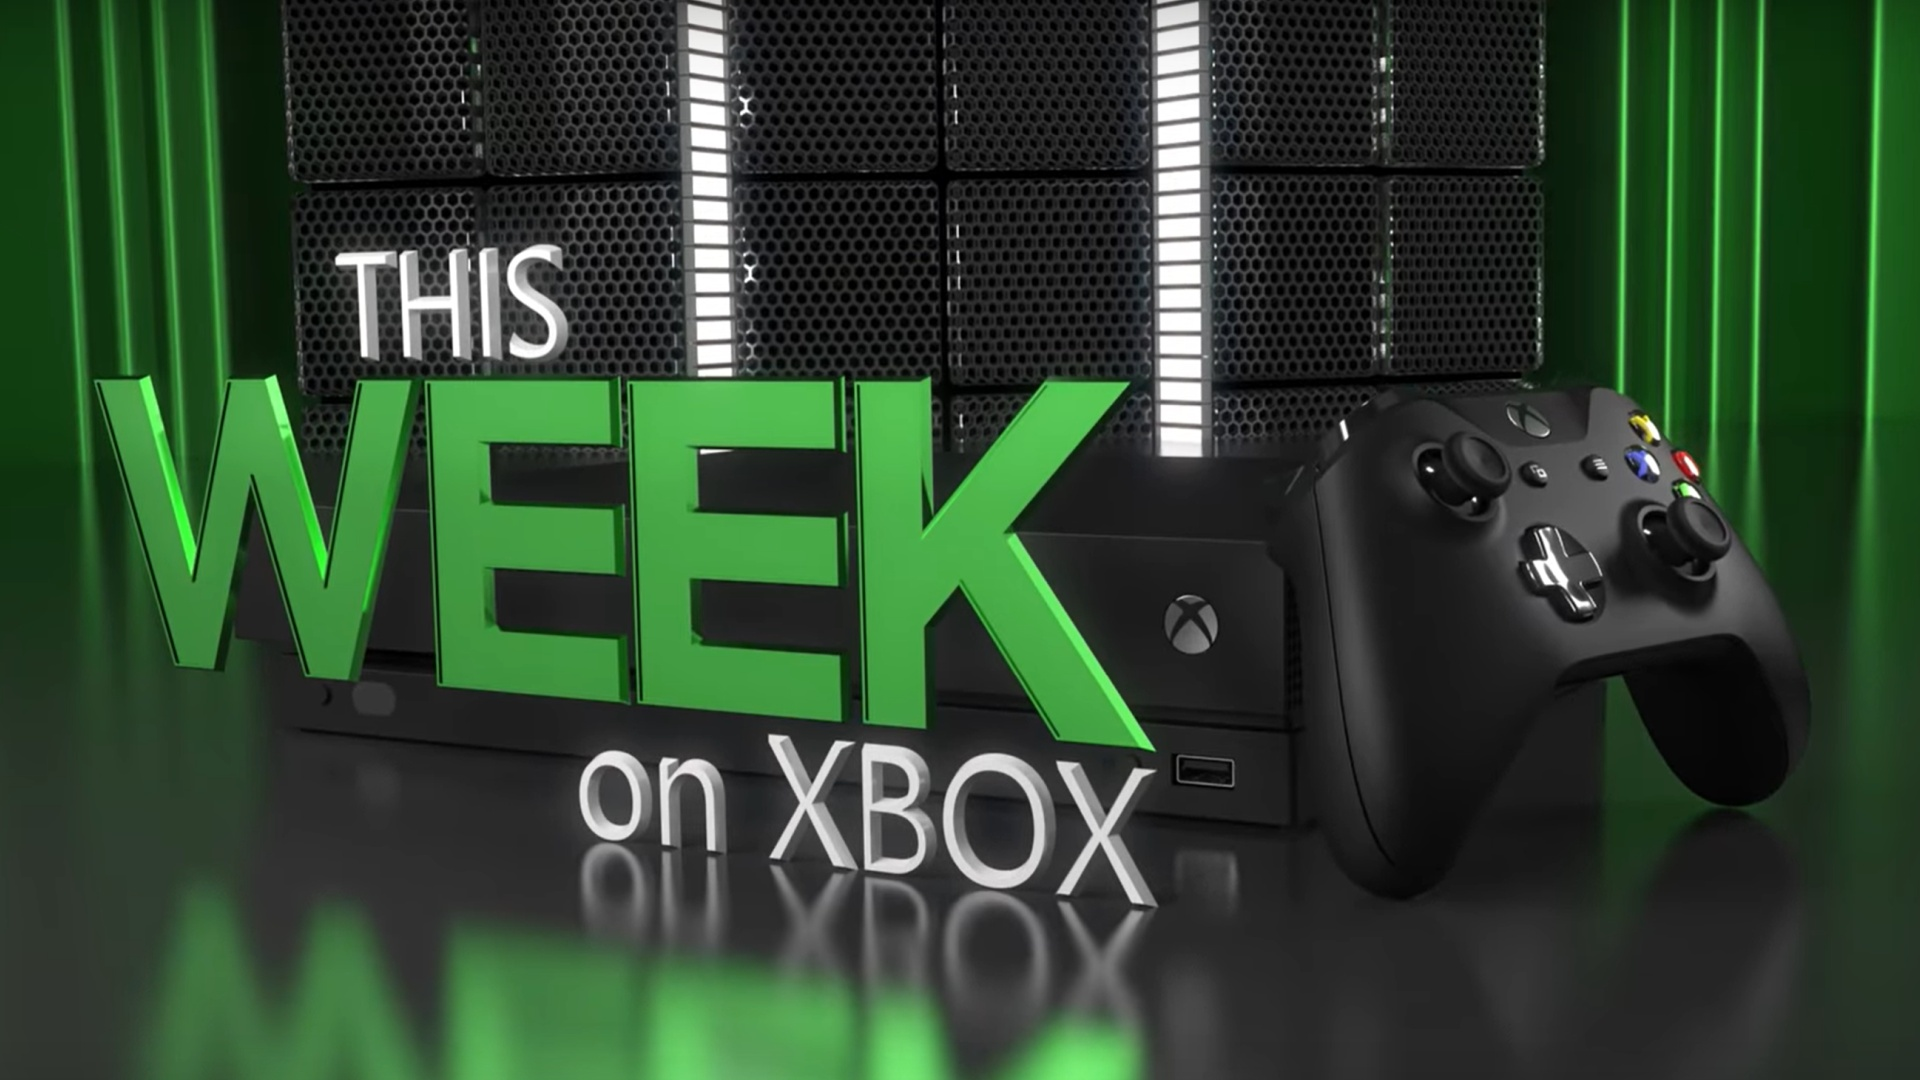 Video For This Week on Xbox: February 21, 2020